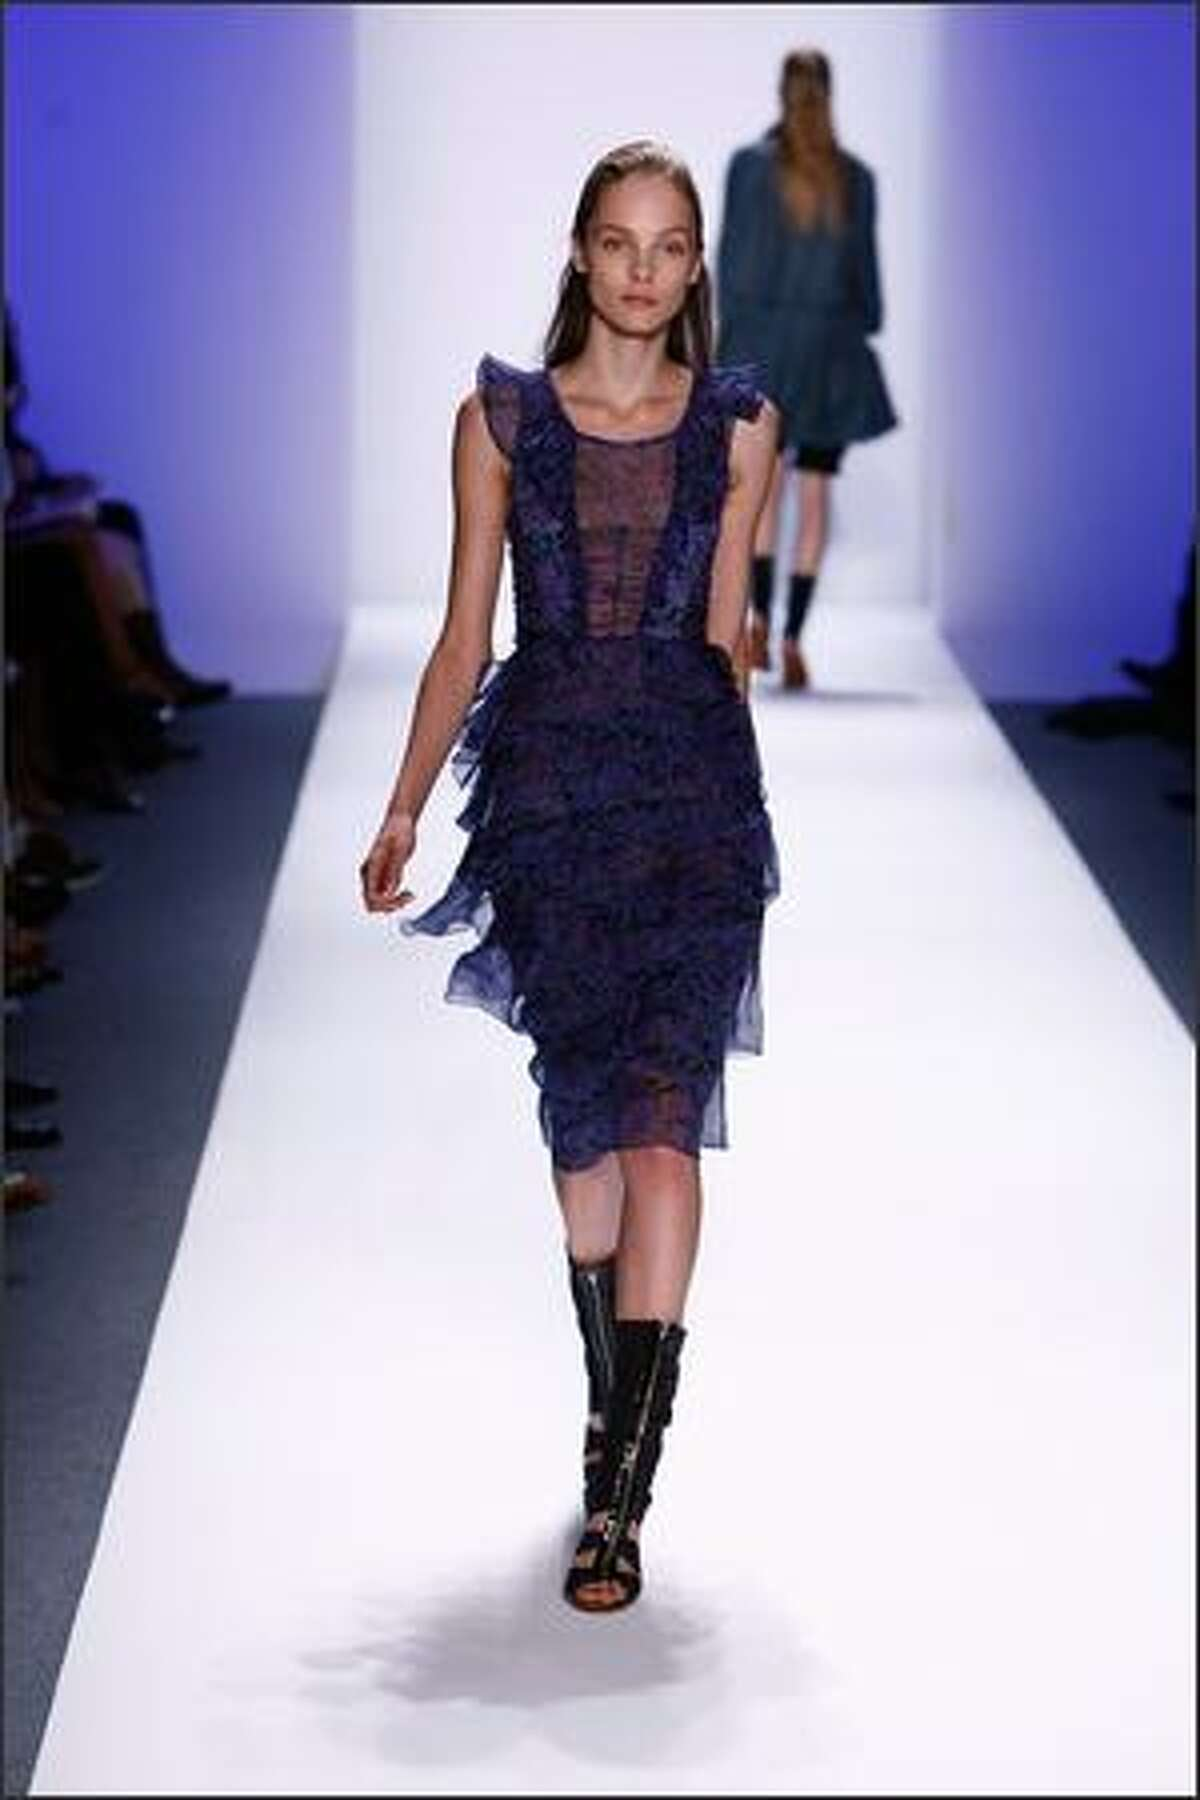 A model walks the runway at the Richard Chai Spring 2009 fashion show during Mercedes-Benz Fashion Week at The Salon in New York City.